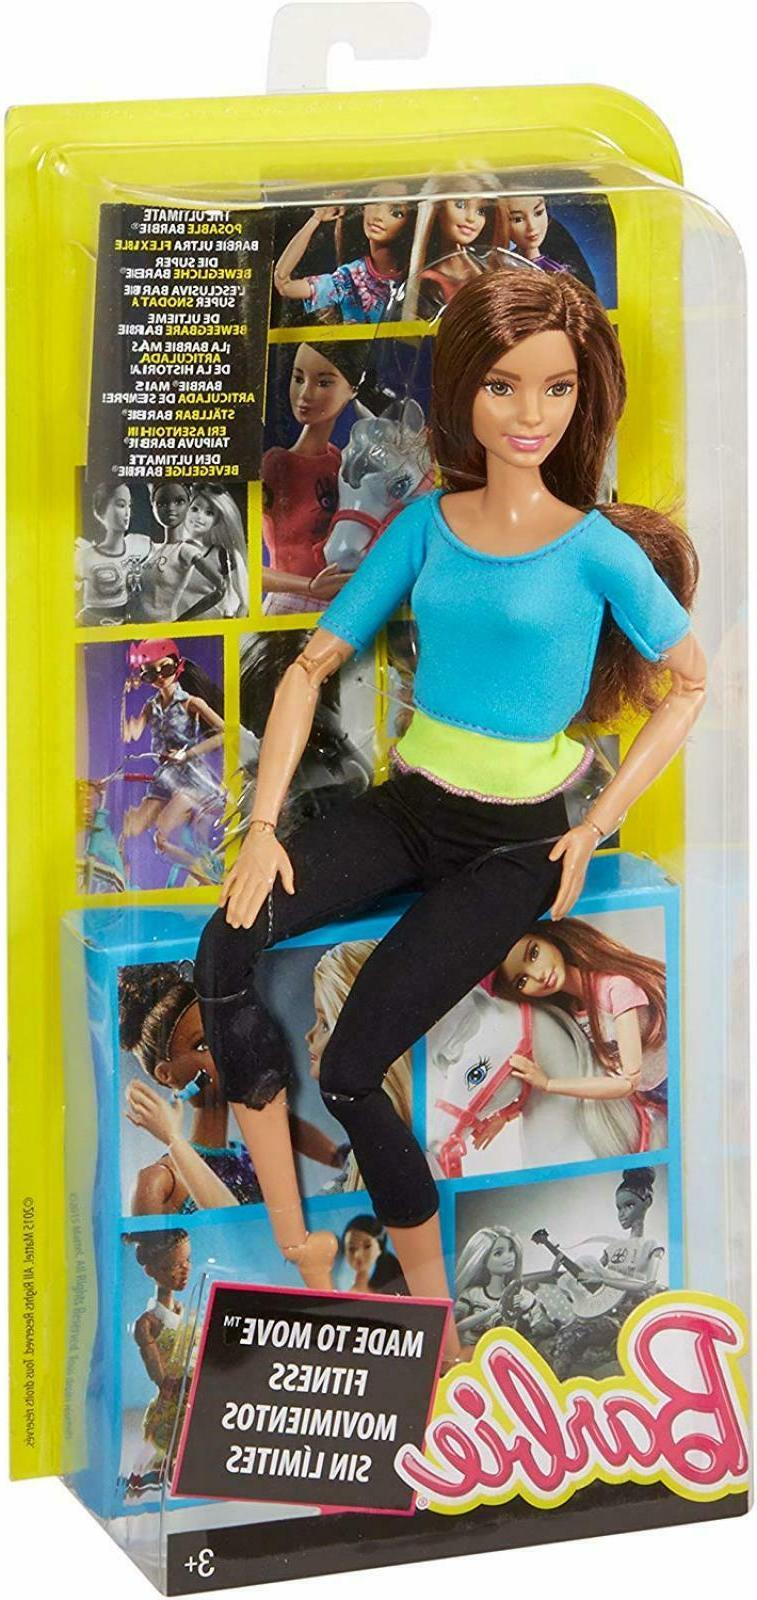 Barbie Made to Barbie Top Amazon New